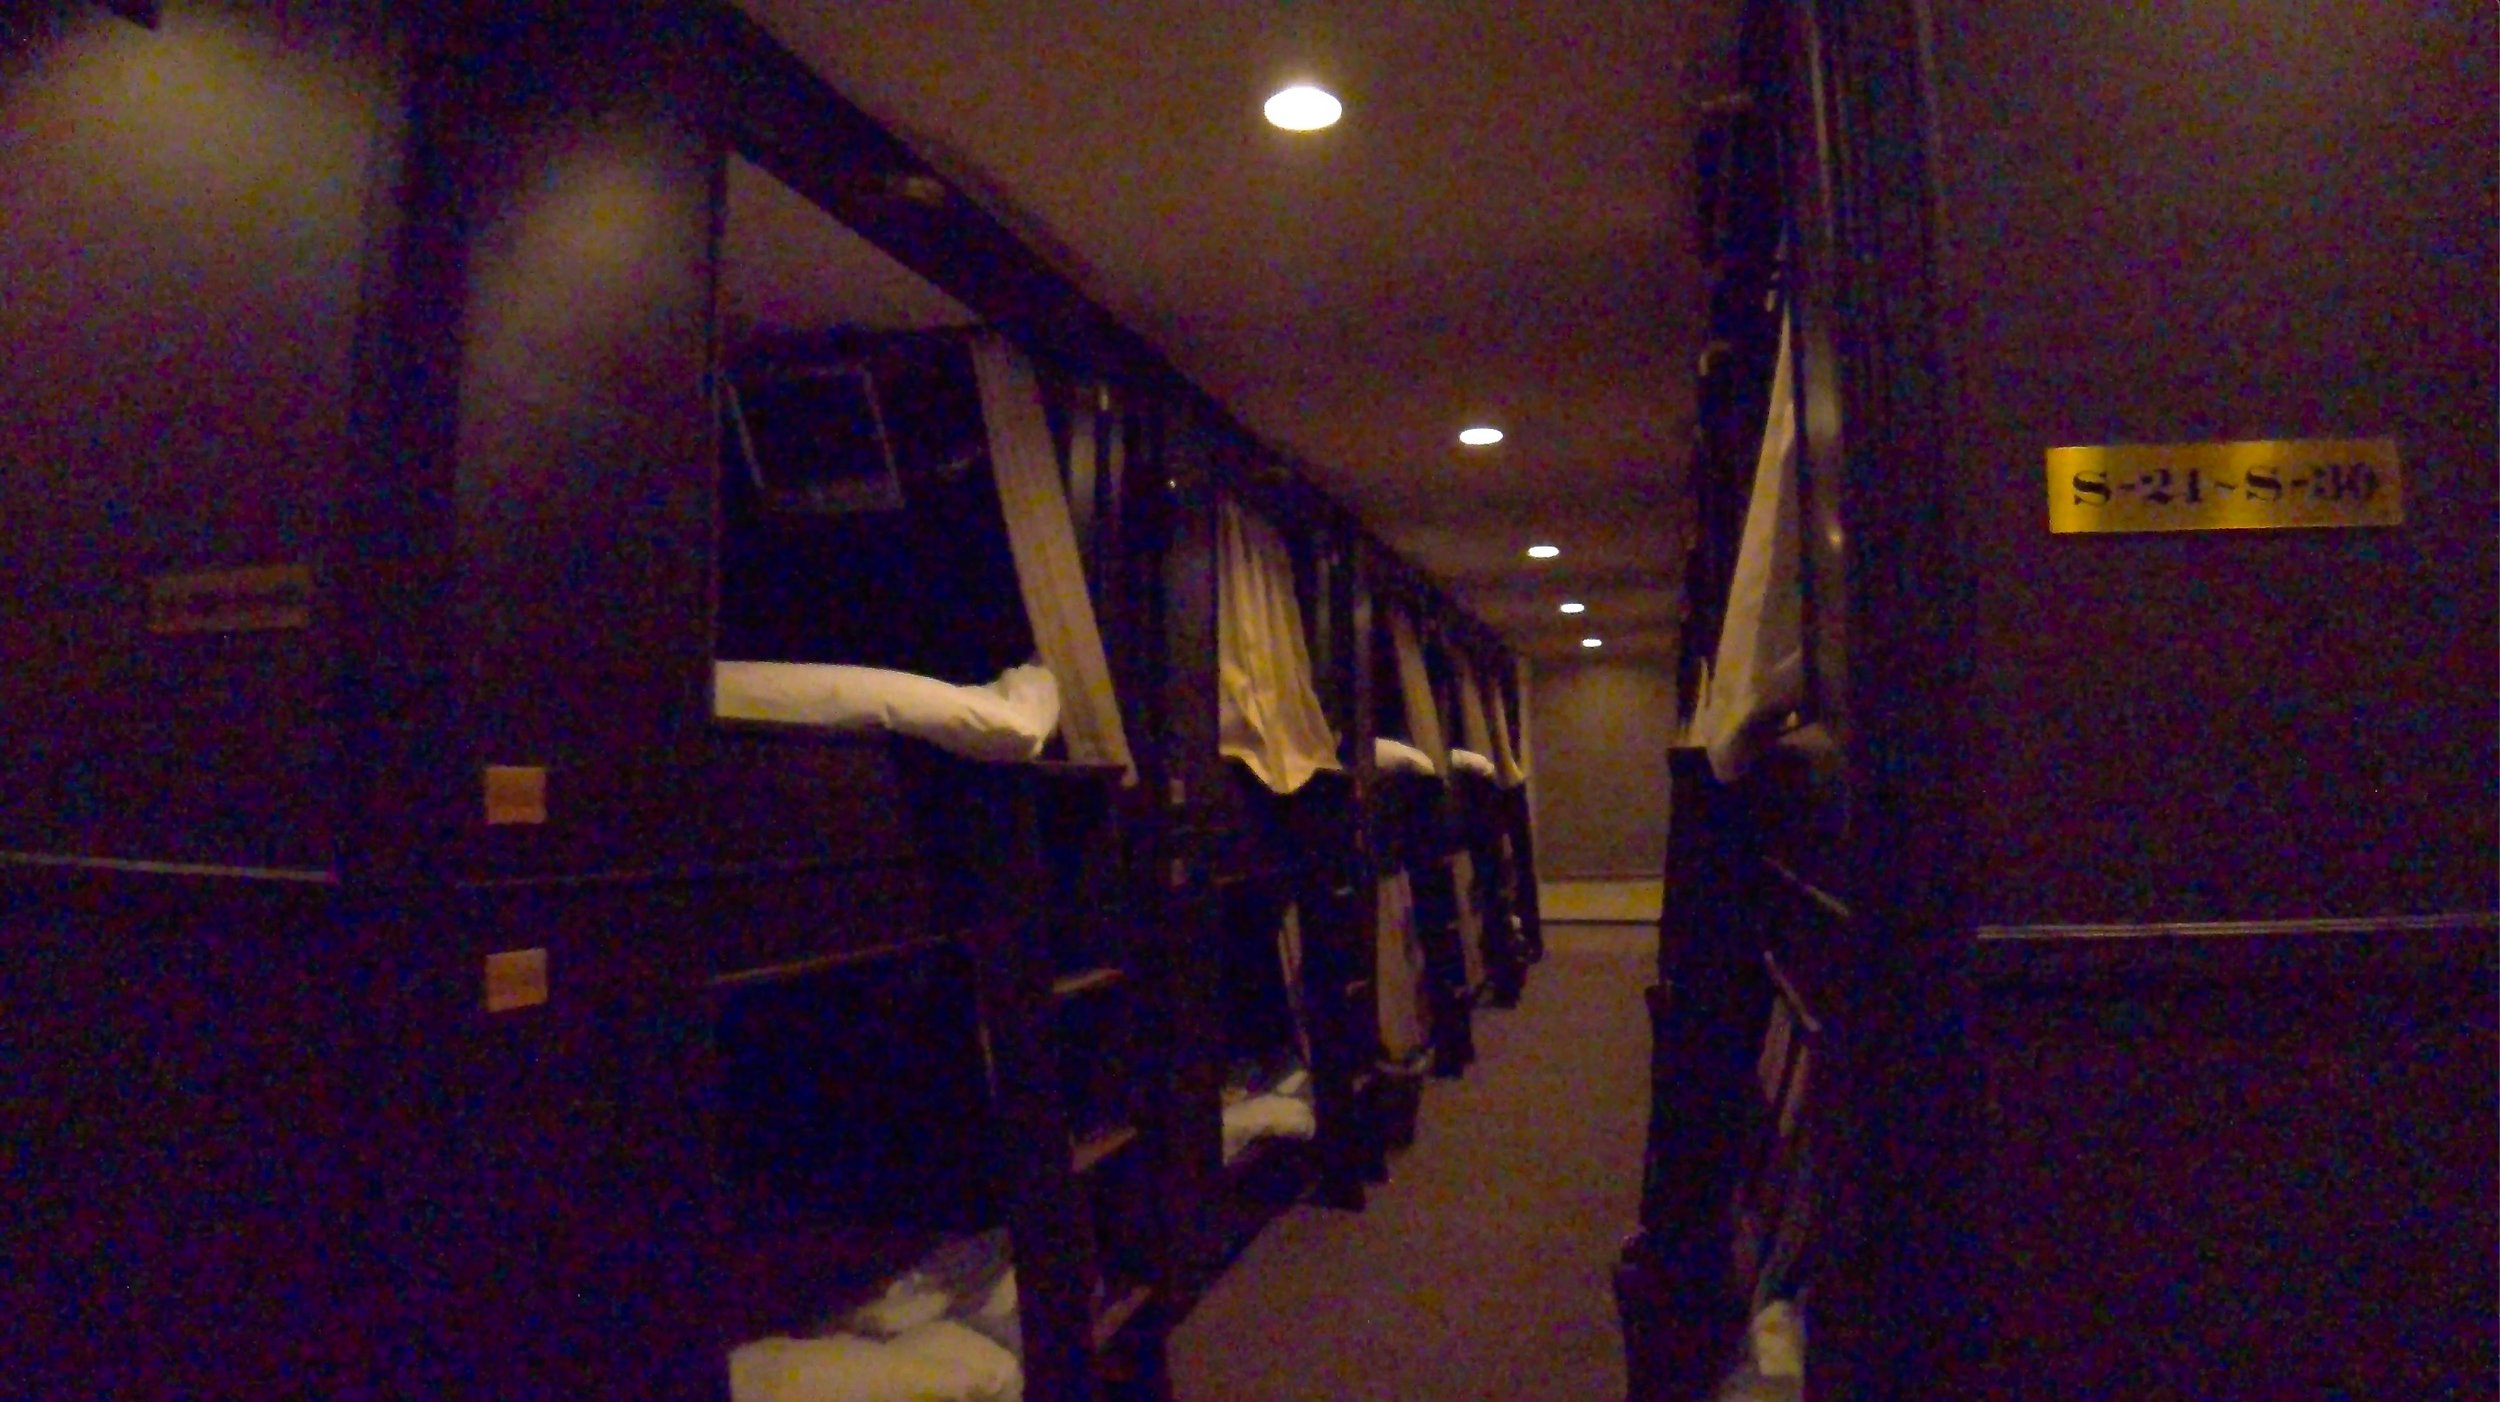 Well Cabin Nakasu. It was very hard to get a good picture because of the low light.